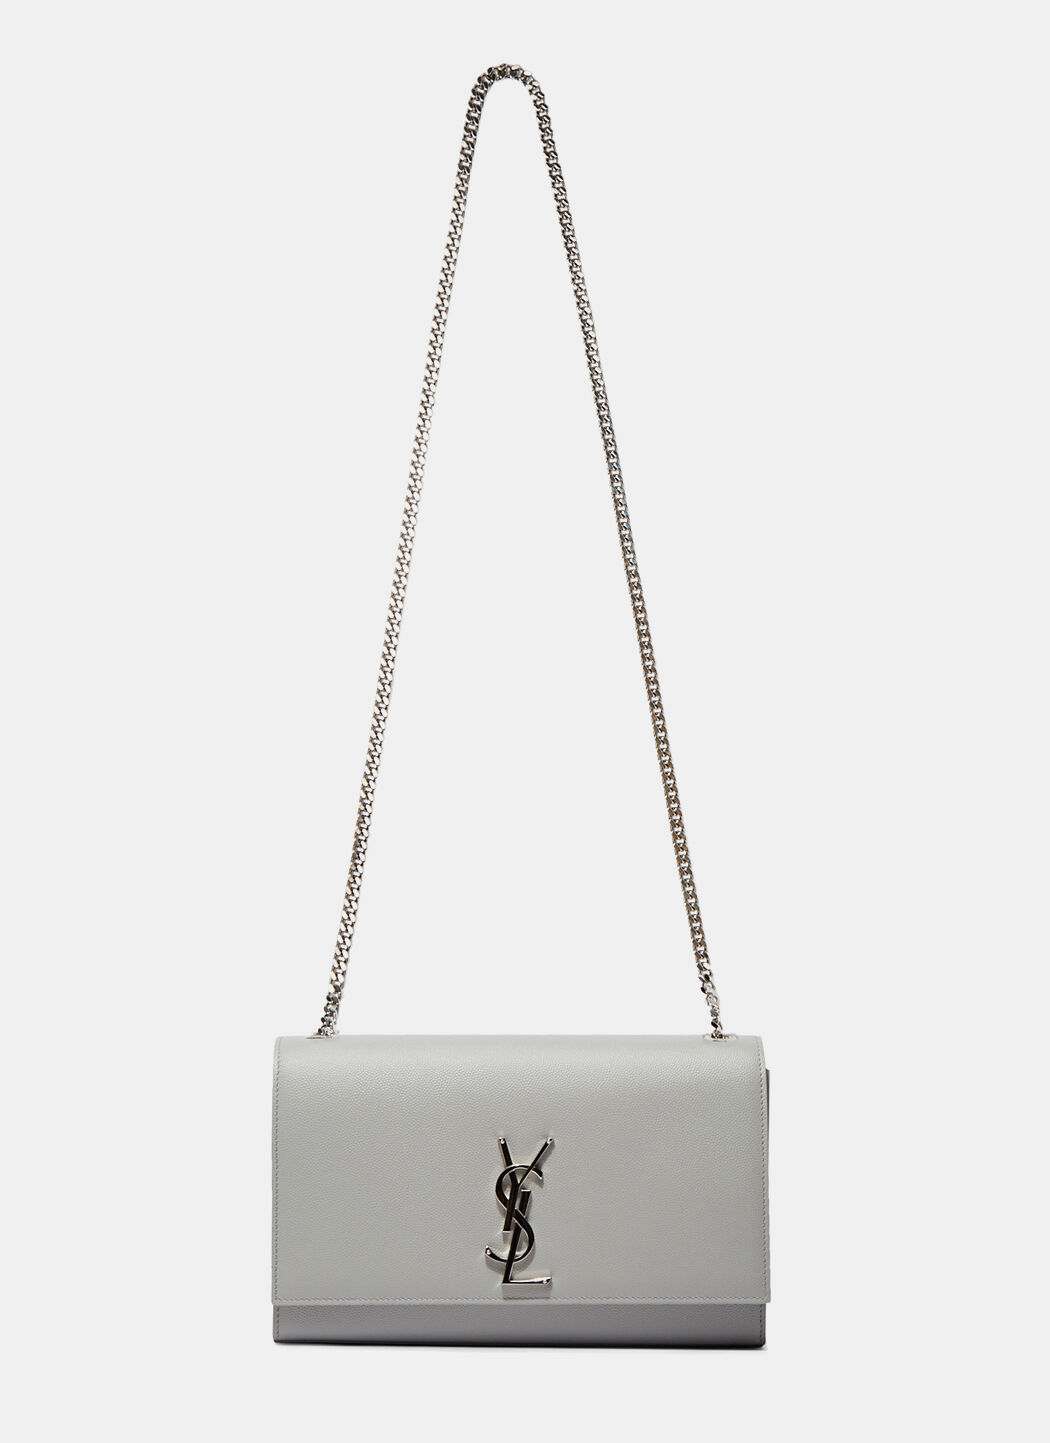 ysl crossbody replica - classic medium kate monogram saint laurent satchel in ultramarine ...